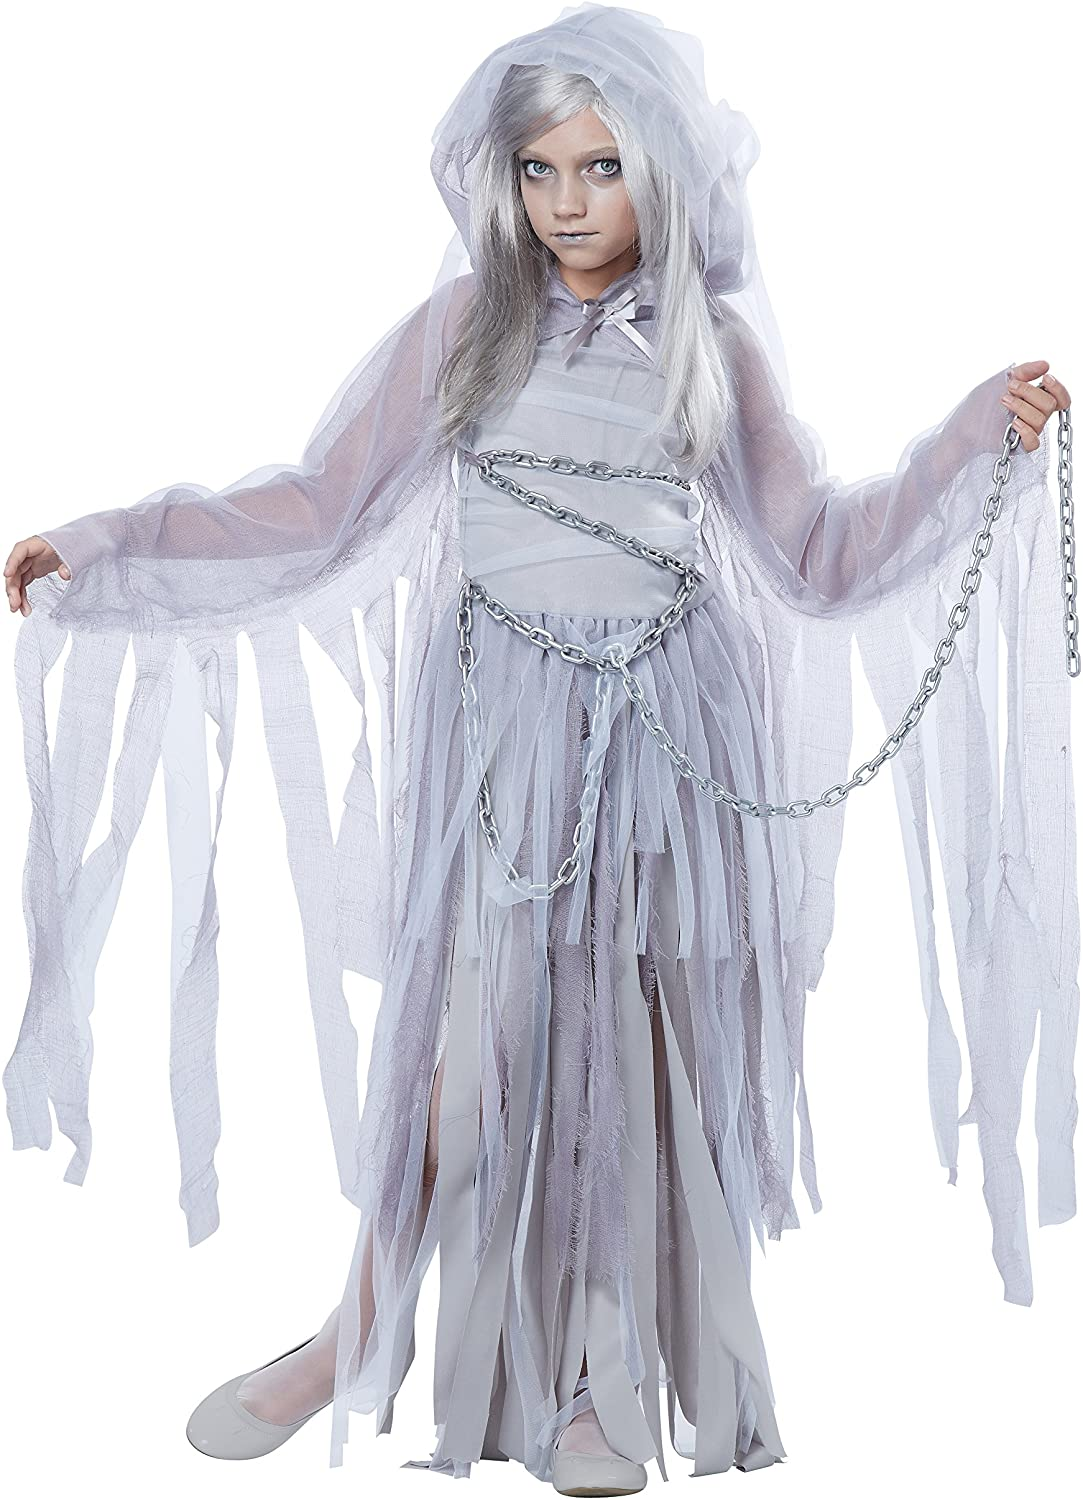 California Costumes Haunted Beauty Child Costume, Small